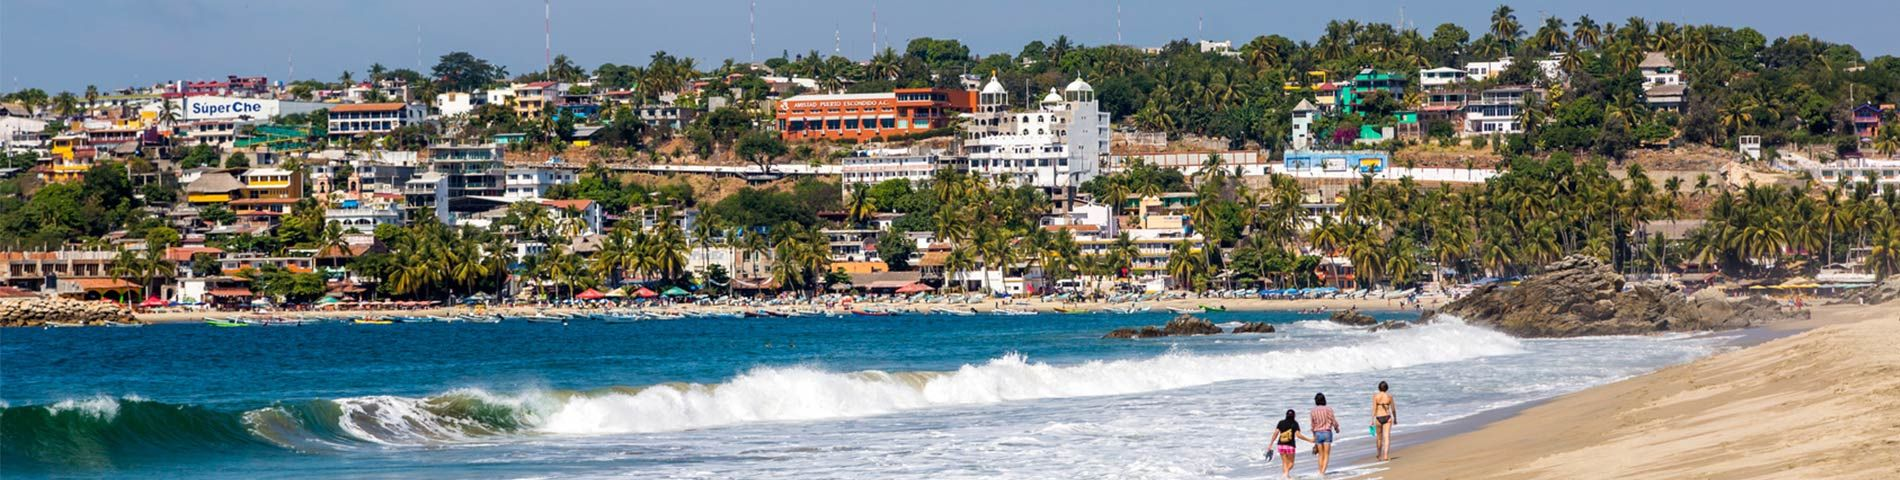 Puerto Escondido